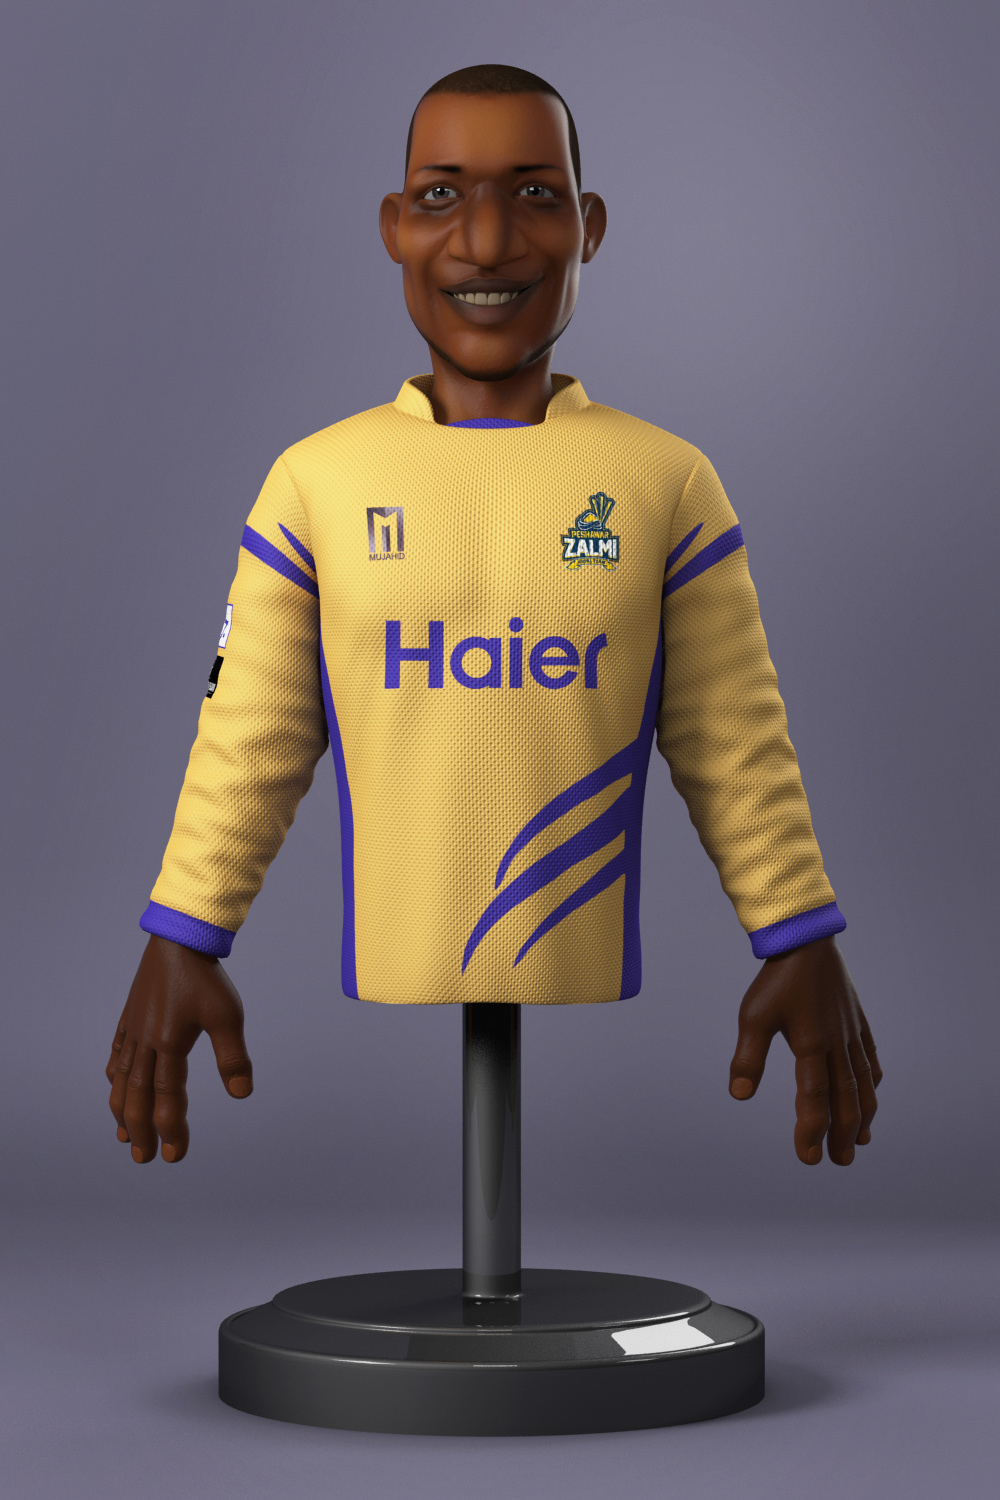 Nakhan1990 darren sammy cartoon 1 38c2e098 n8cx